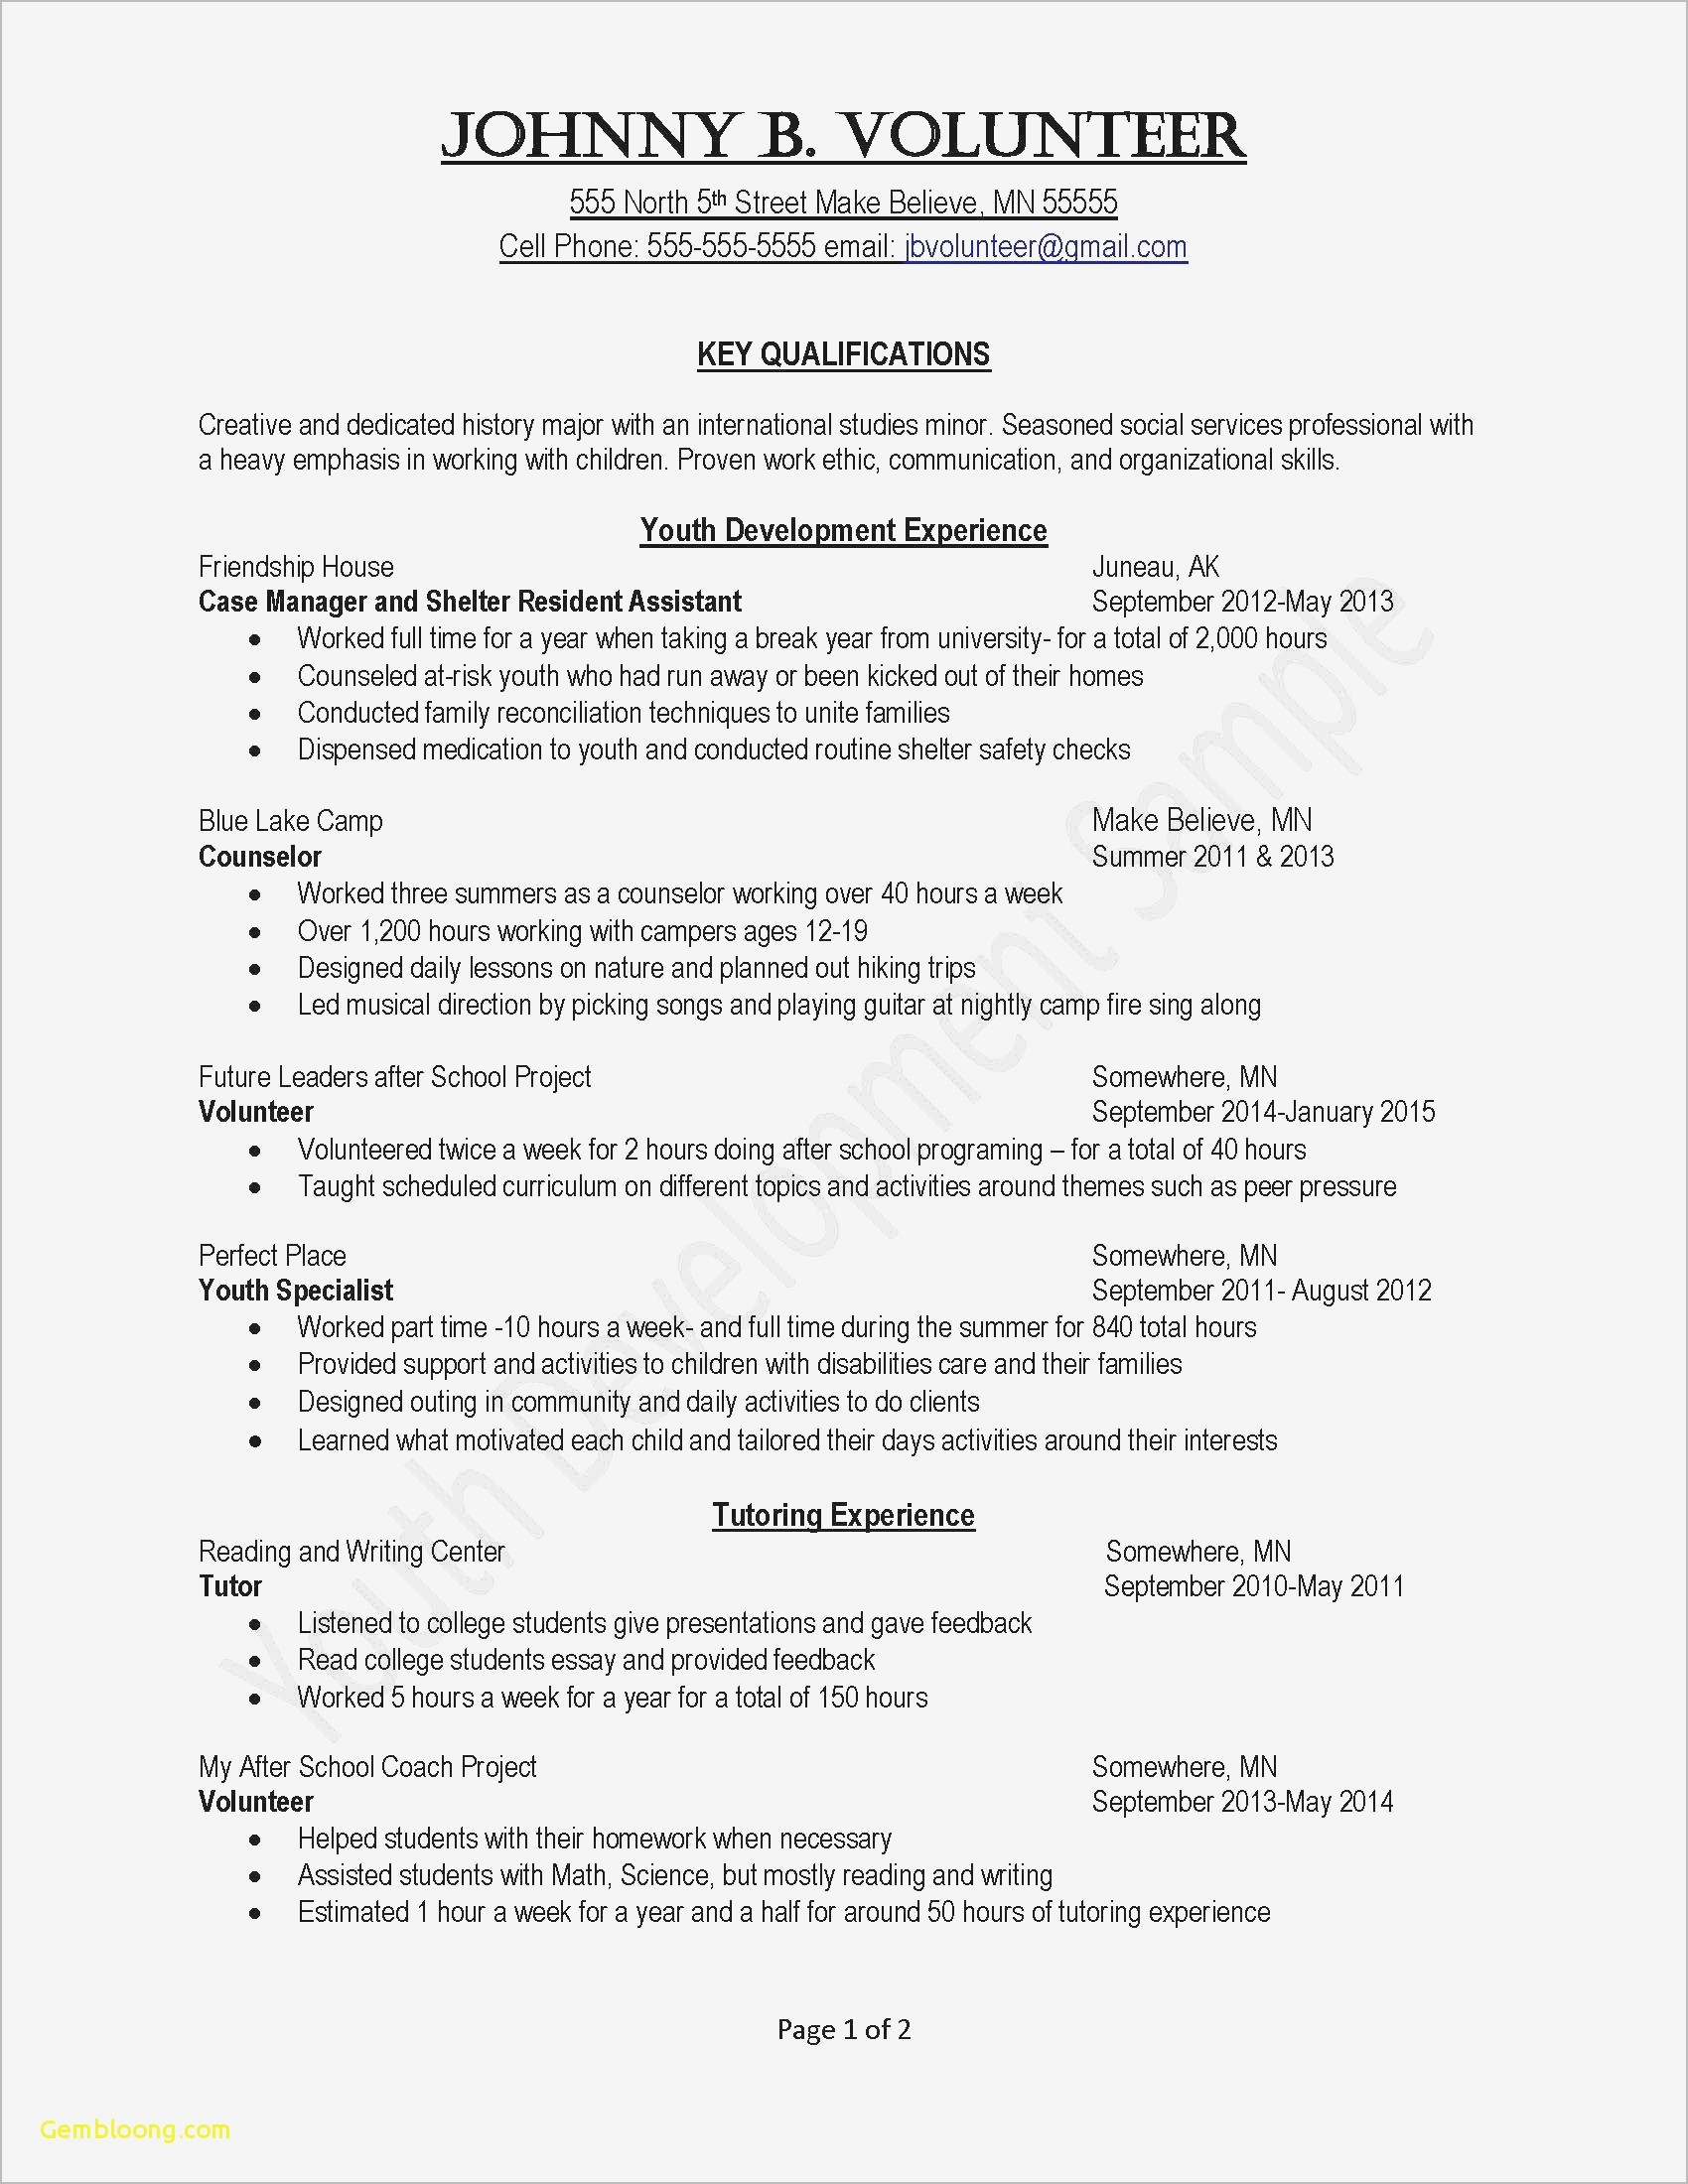 Cover Letter Template Word Job Application - Job Fer Letter Template Us Copy Od Consultant Cover Letter Fungram